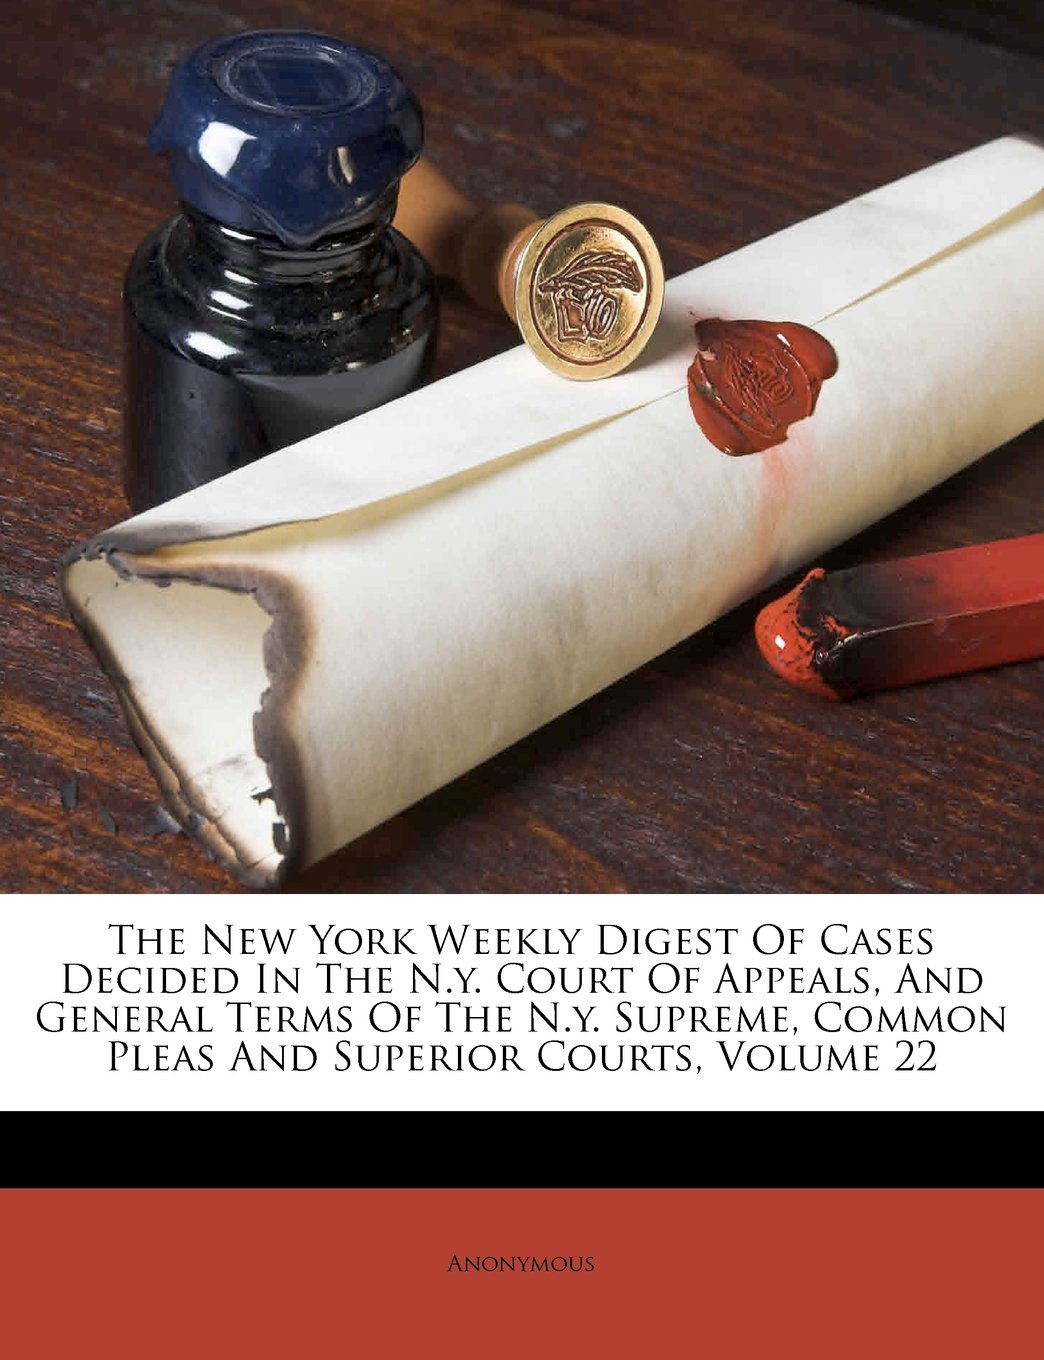 The New York Weekly Digest Of Cases Decided In The N.y. Court Of Appeals, And General Terms Of The N.y. Supreme, Common Pleas And Superior Courts, Volume 22 PDF